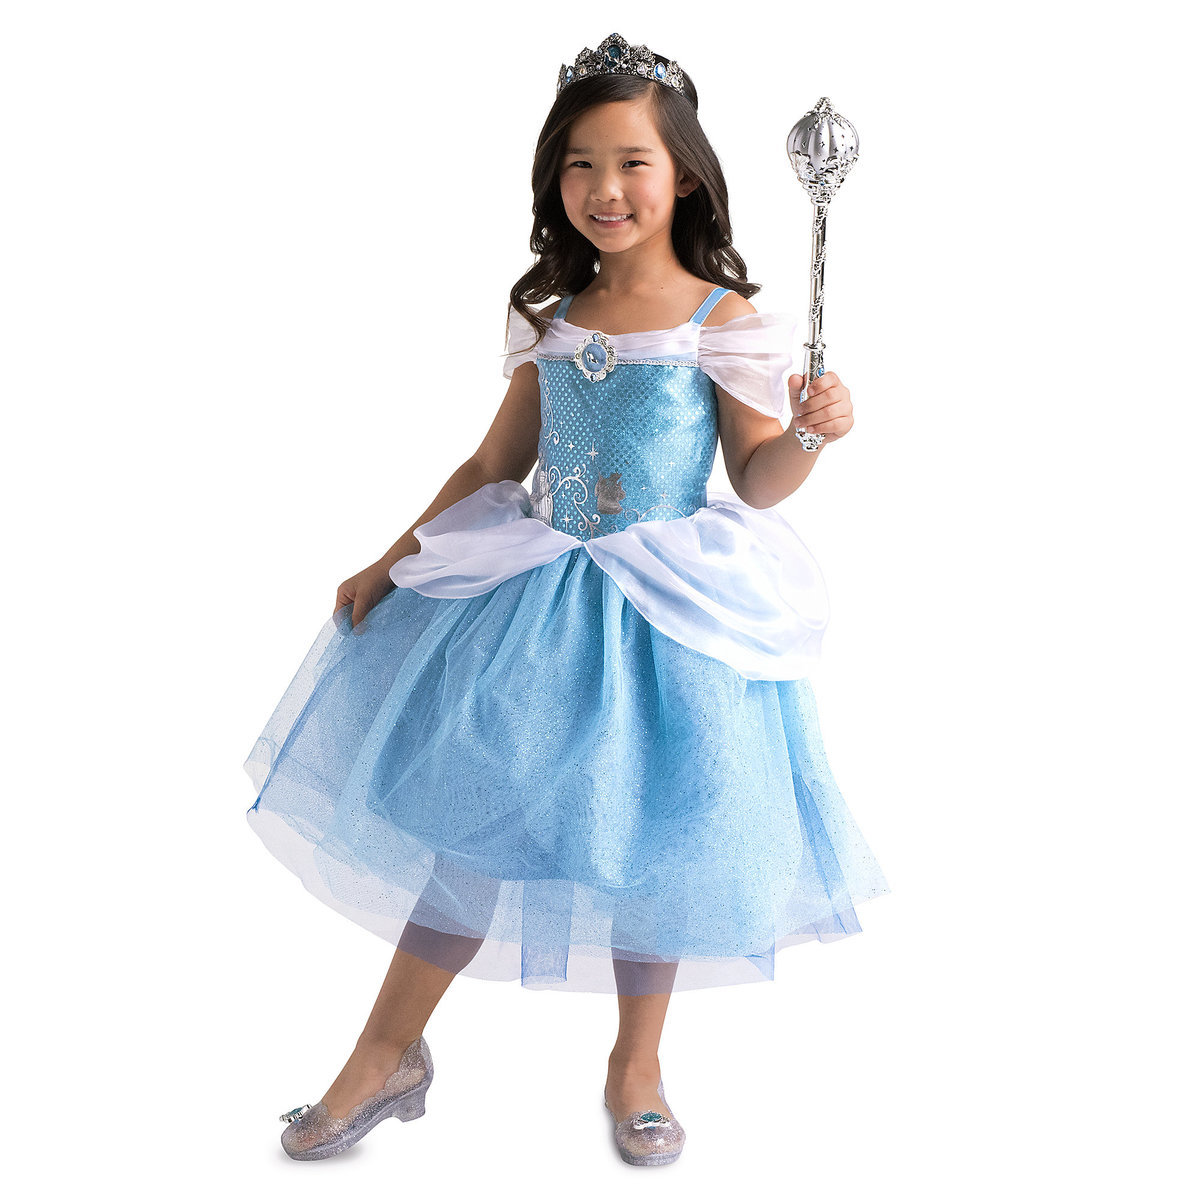 8 Best Disney Character Costumes for Kids